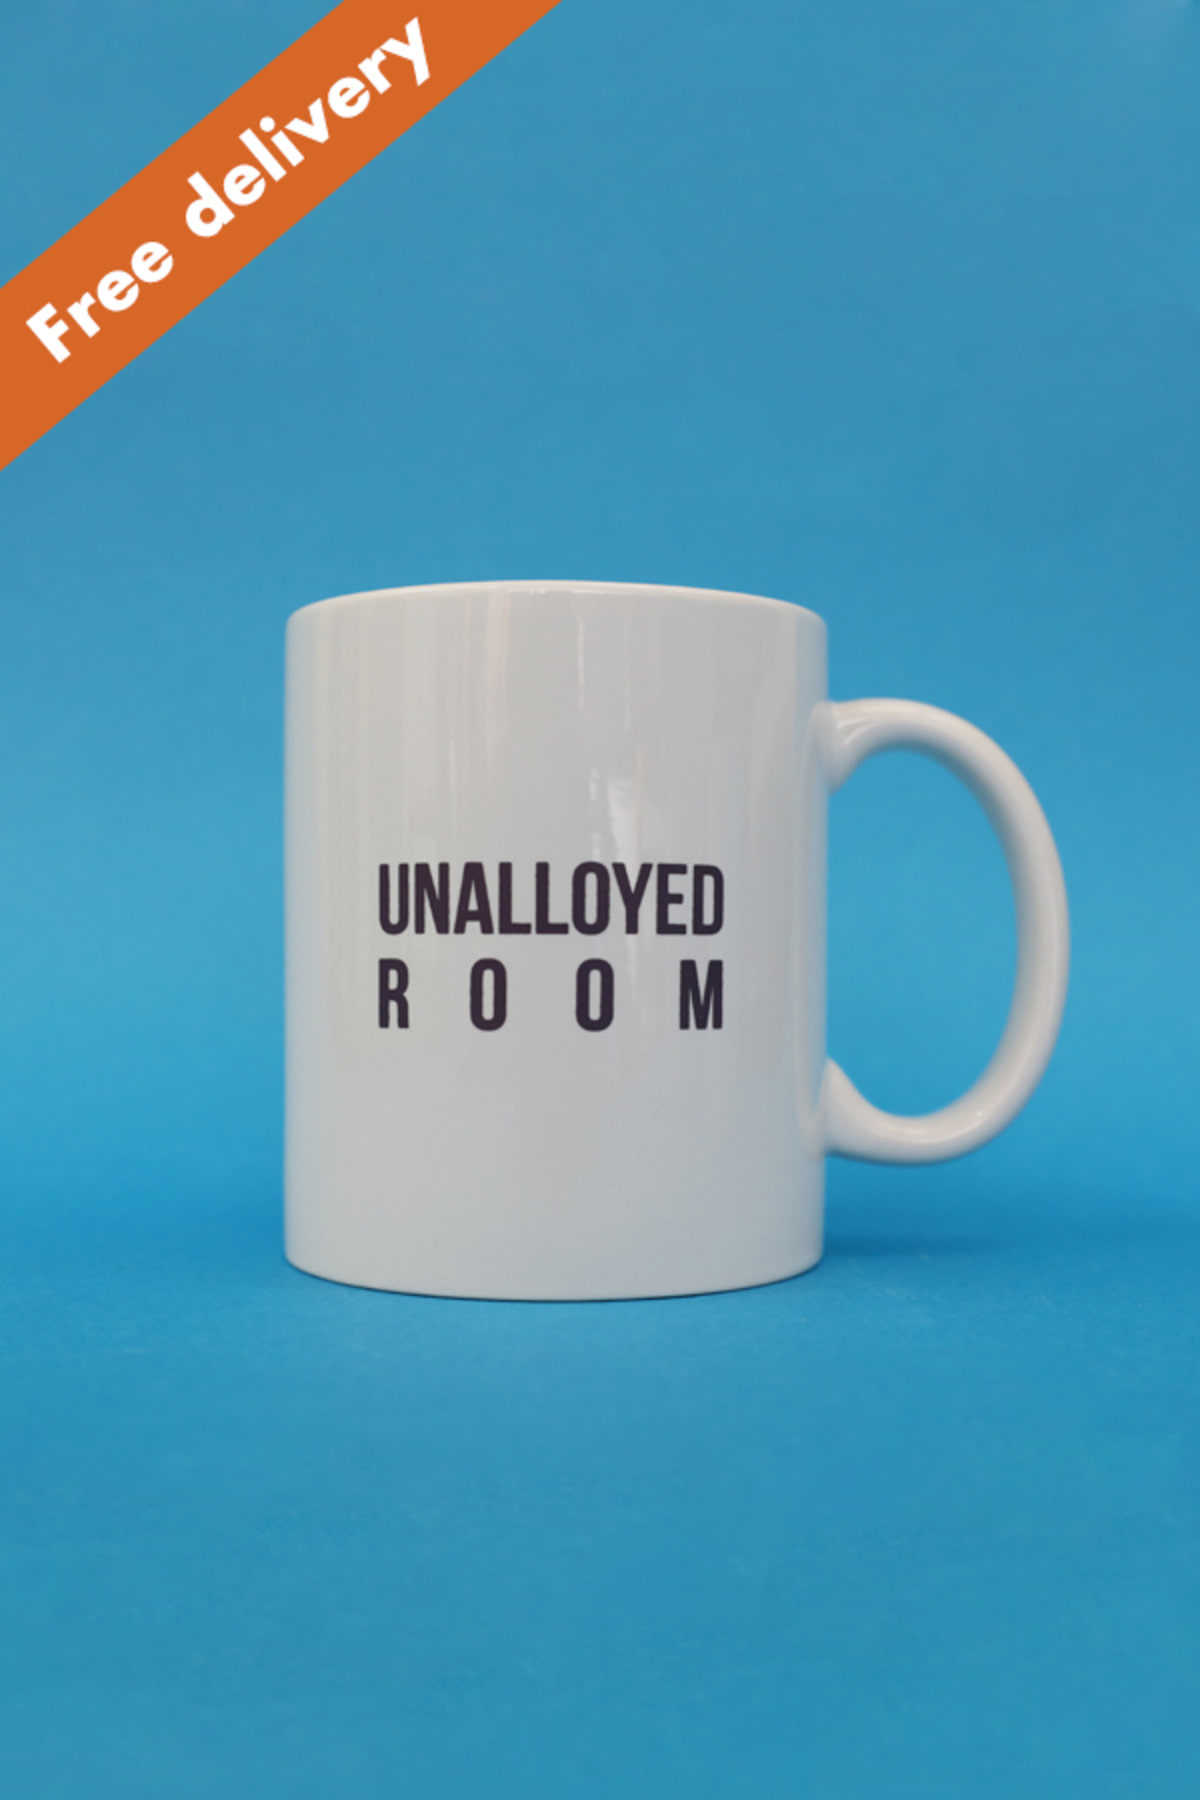 [GOODS] UNALLOYED ROOM MUG / PURPLE